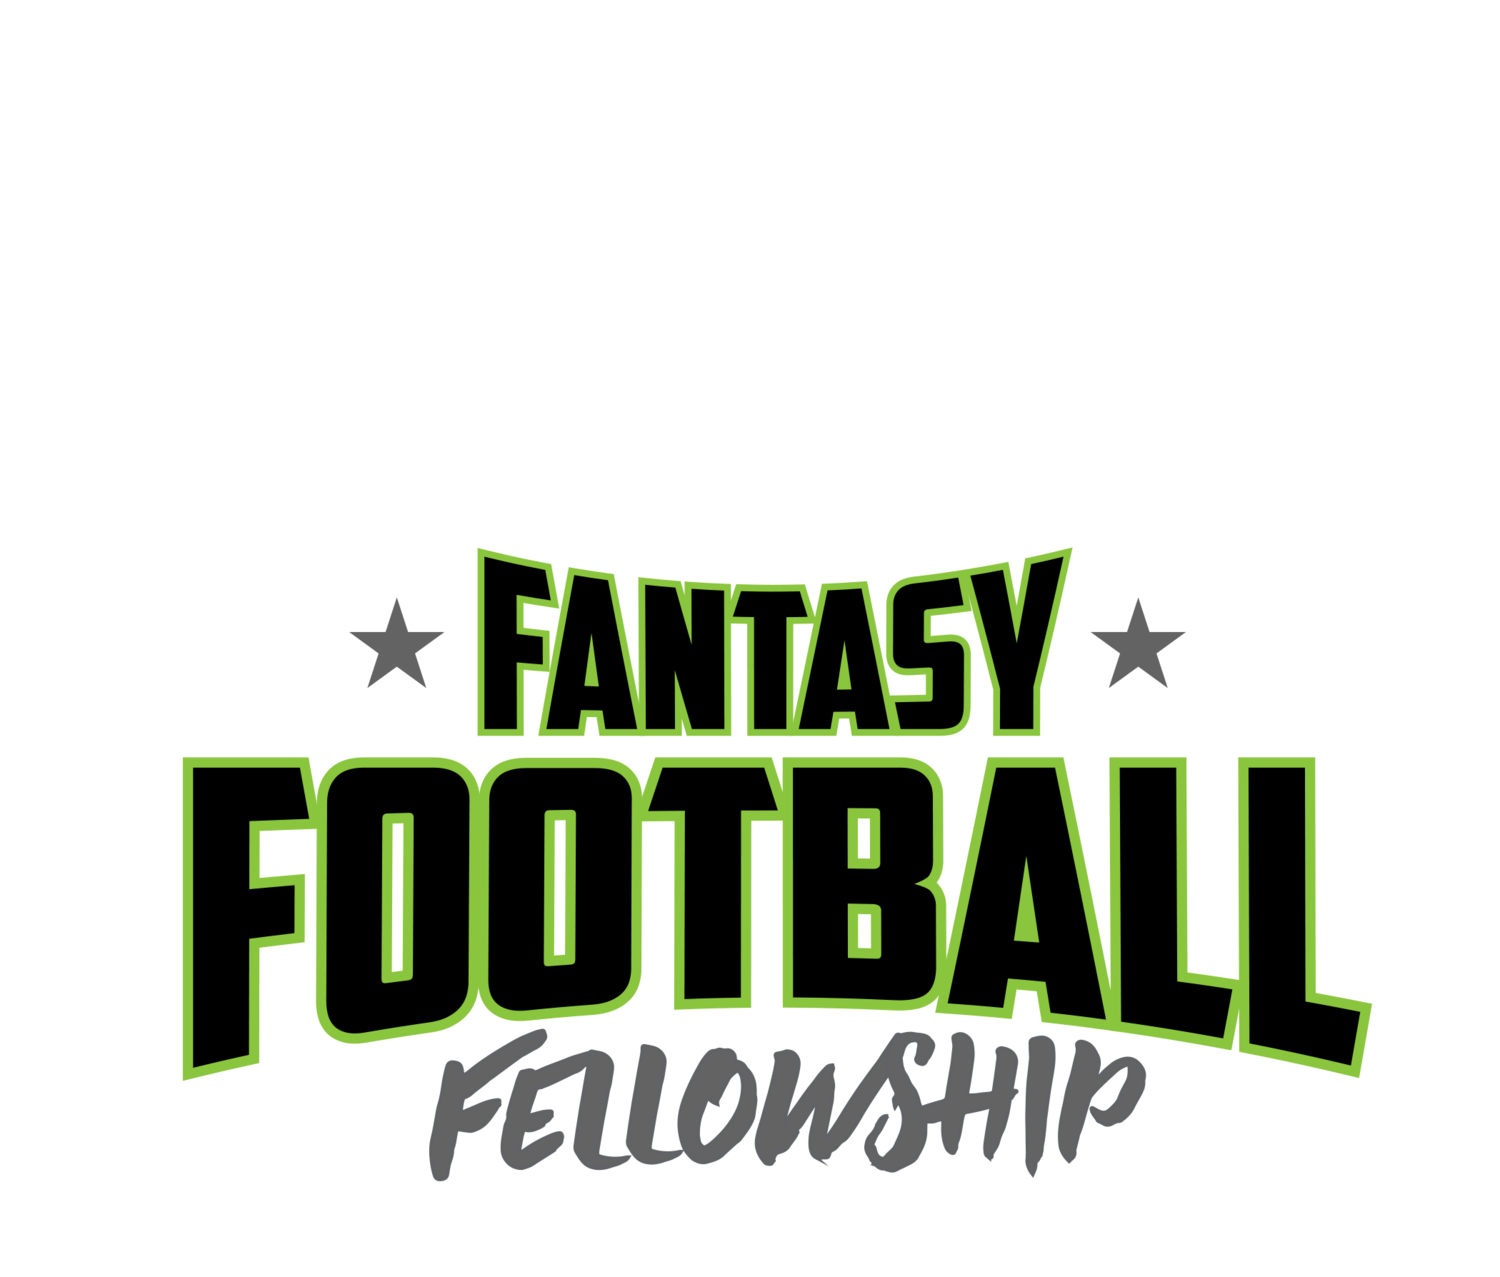 Fantasy Football Fellowship